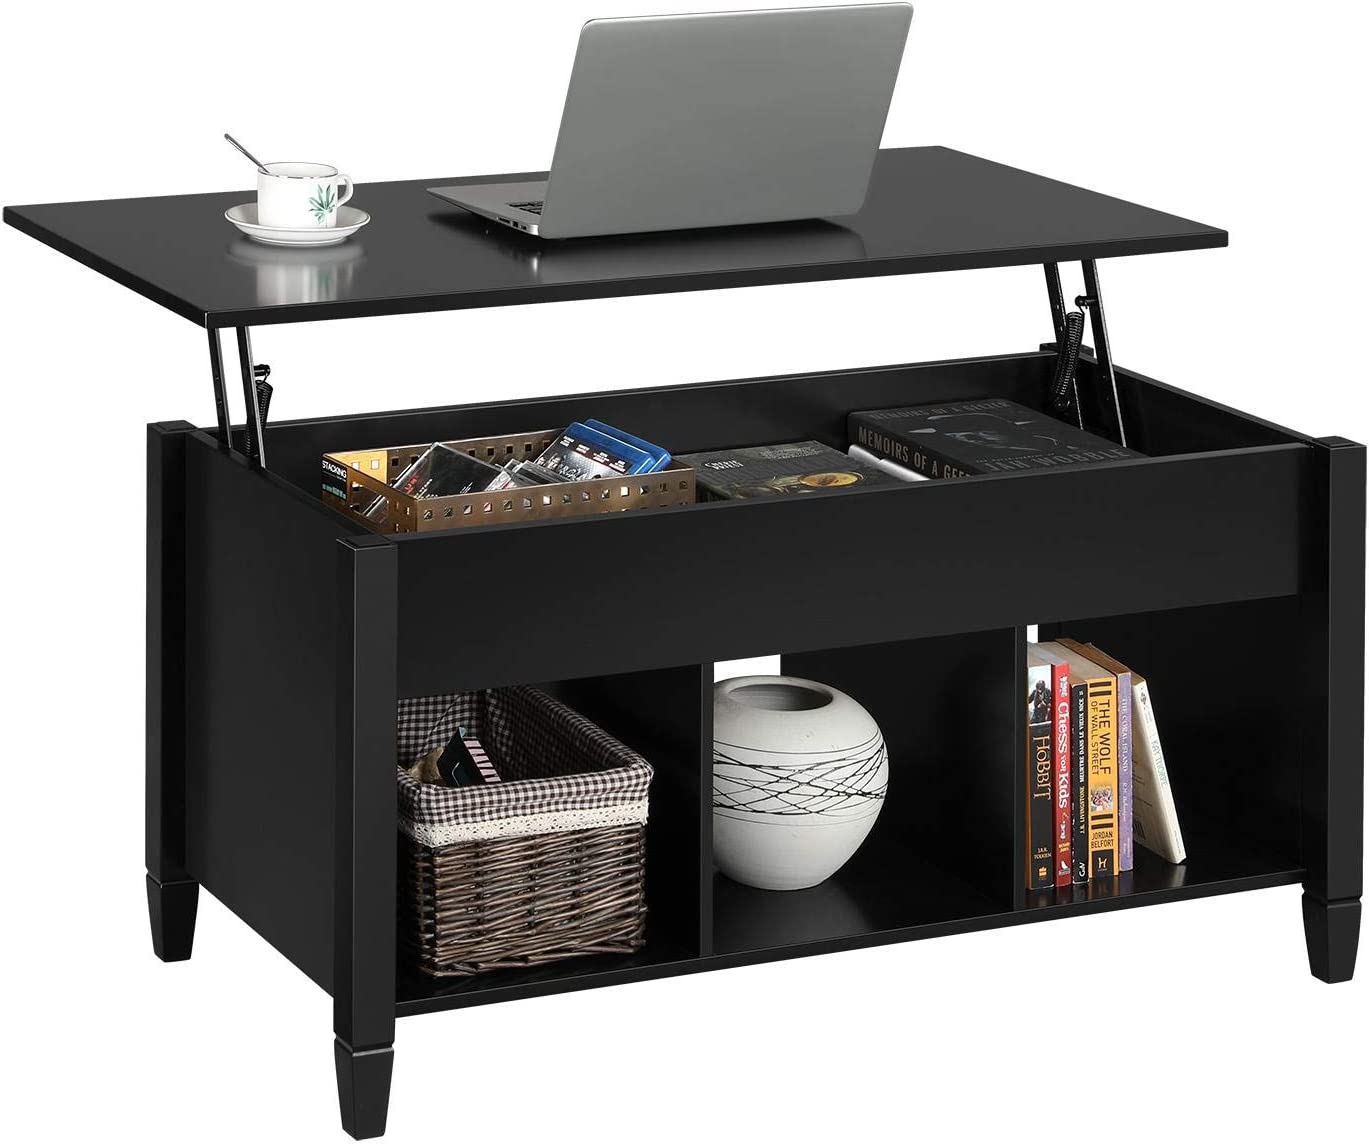 YAHEETECH Minimalist Wooden Lift Top Coffee Table w/Hidden Storage Compartment & Lower 3 Cube Open Shelves for Living Room/Reception Room/Office, Black